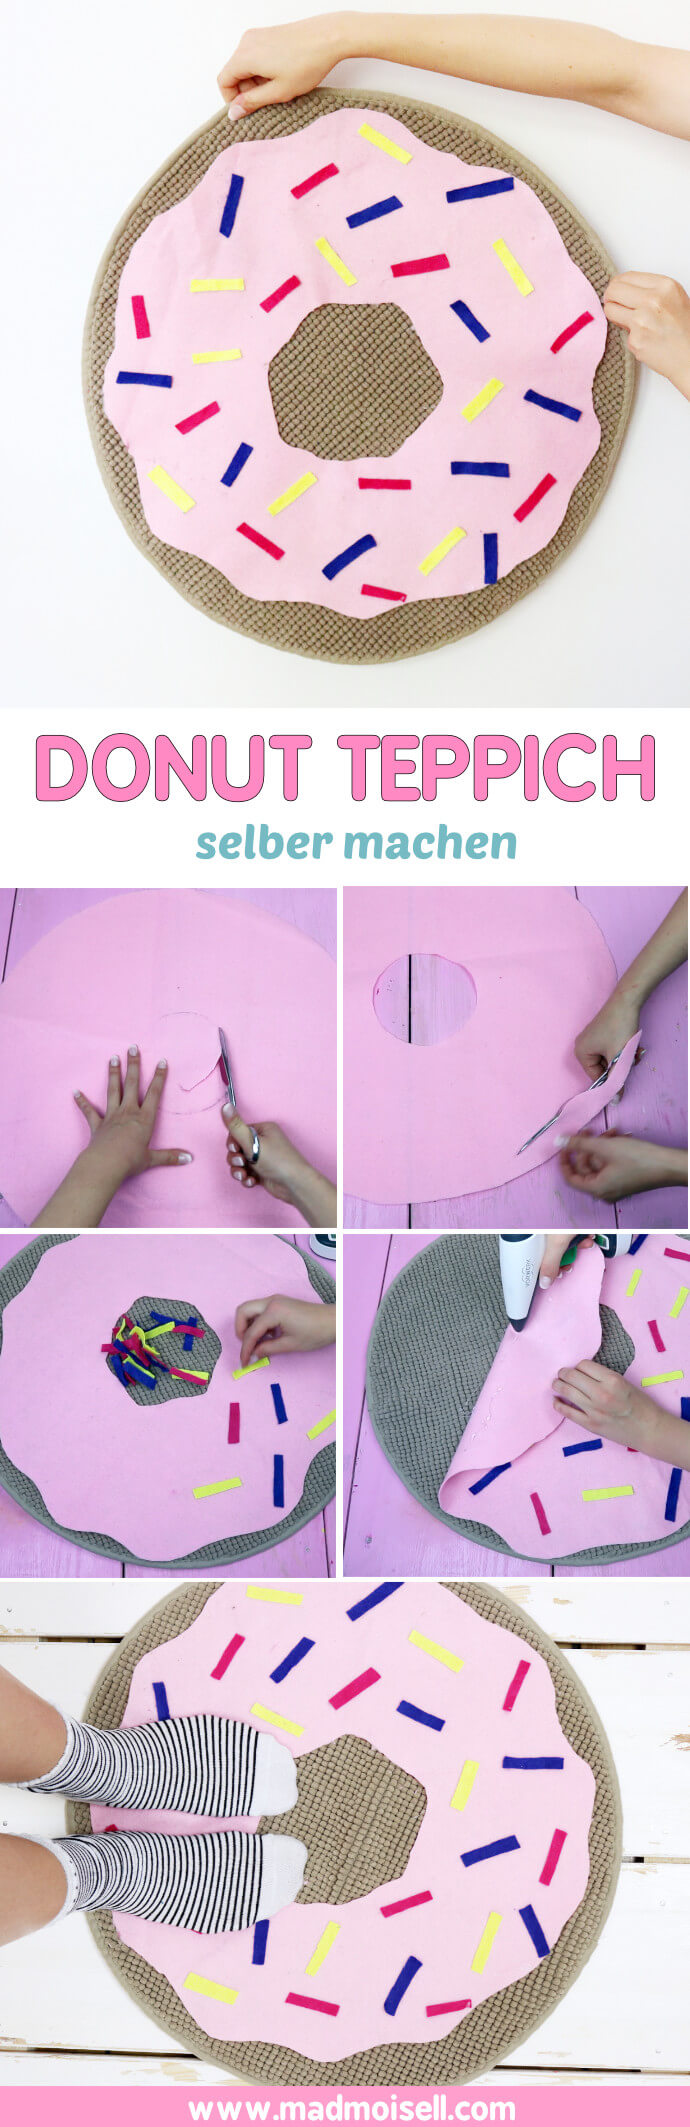 diy donut teppich selber machen einfacher g nstiger ikea hack. Black Bedroom Furniture Sets. Home Design Ideas